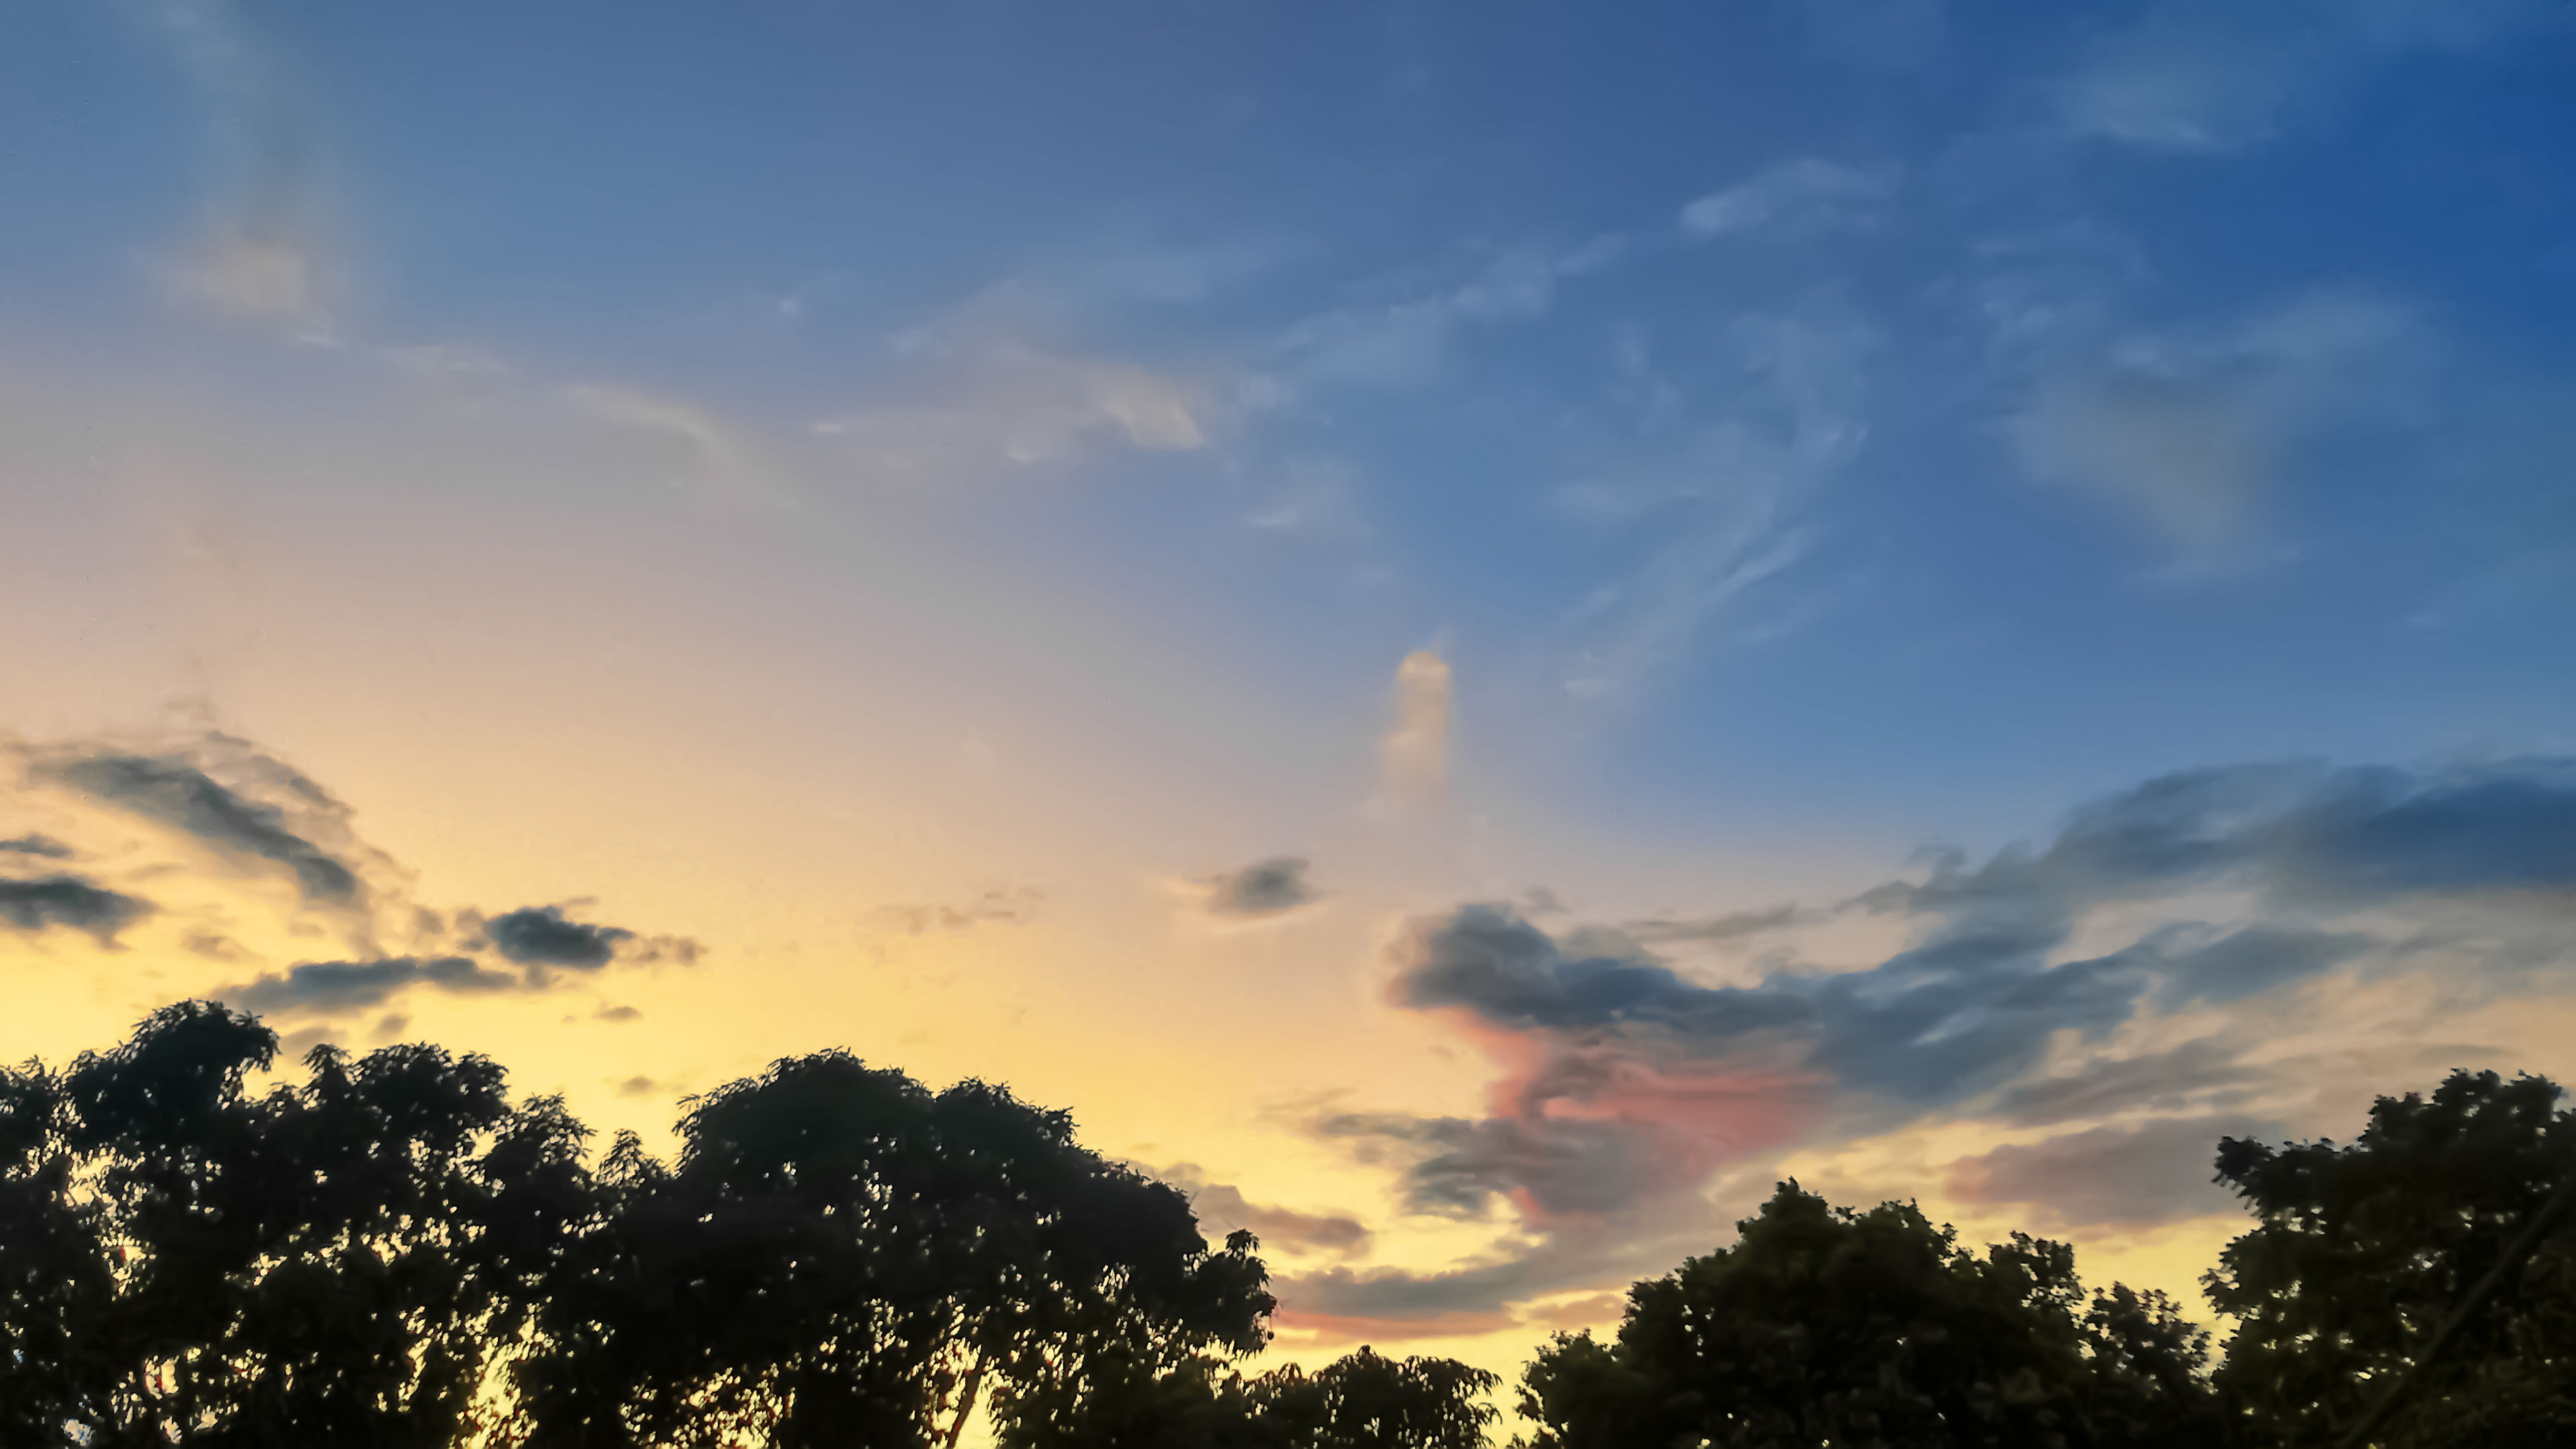 tree, sky, low angle view, sunset, silhouette, beauty in nature, tranquility, scenics, cloud - sky, tranquil scene, nature, cloud, idyllic, growth, blue, outdoors, cloudy, orange color, no people, sunlight